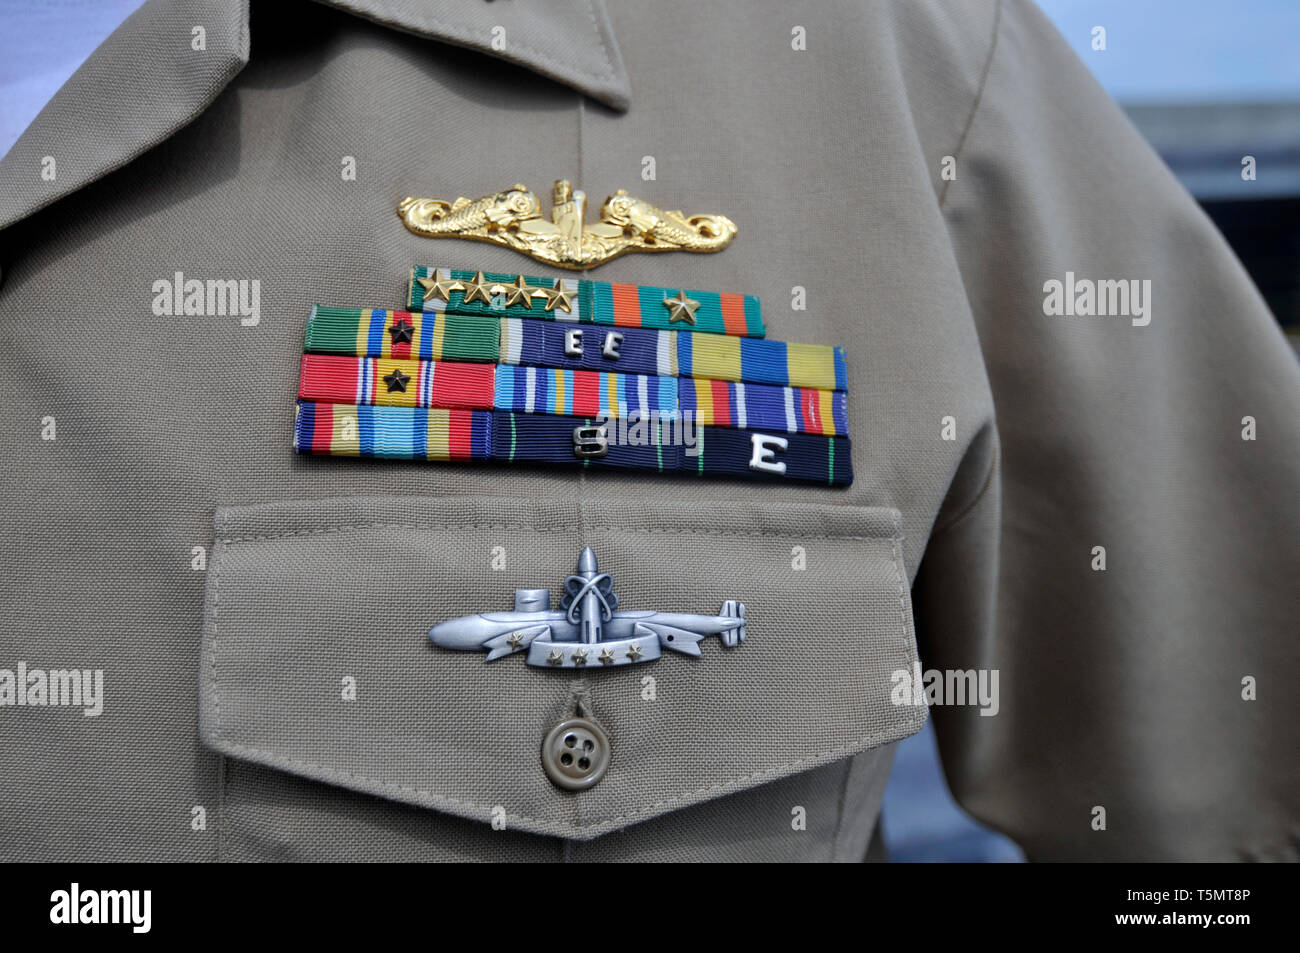 Close up of a naval officers uniform, with emblem & decorations on the nuclear-powered fleet ballistic missile submarine USS Ohio (SSBN-726/SSGN-726). - Stock Image